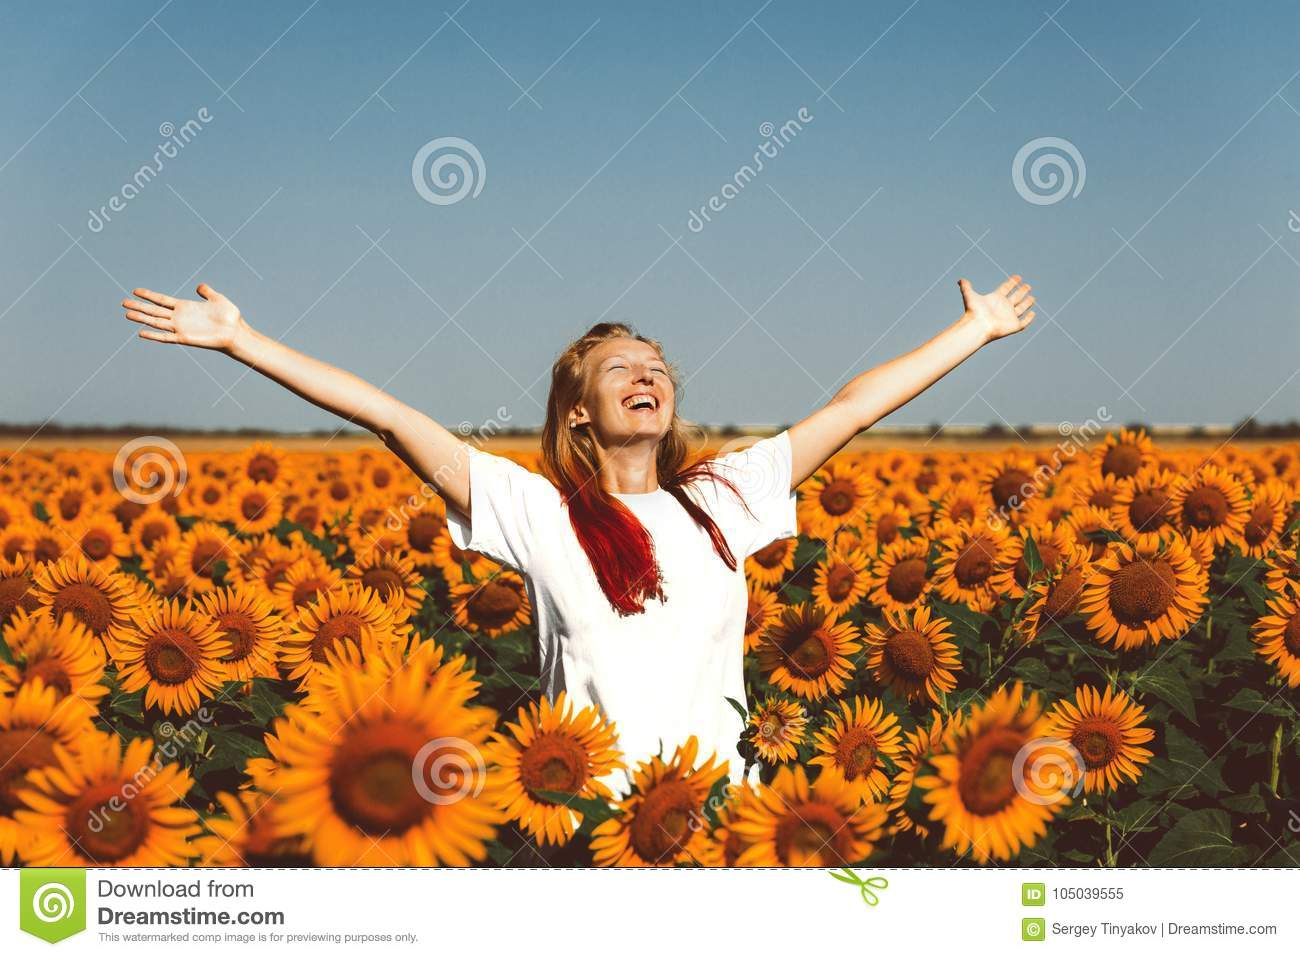 Young Women Standing In Sunflowers And Raising Hands Up. Freedom Lifestyle Outdoor Concept